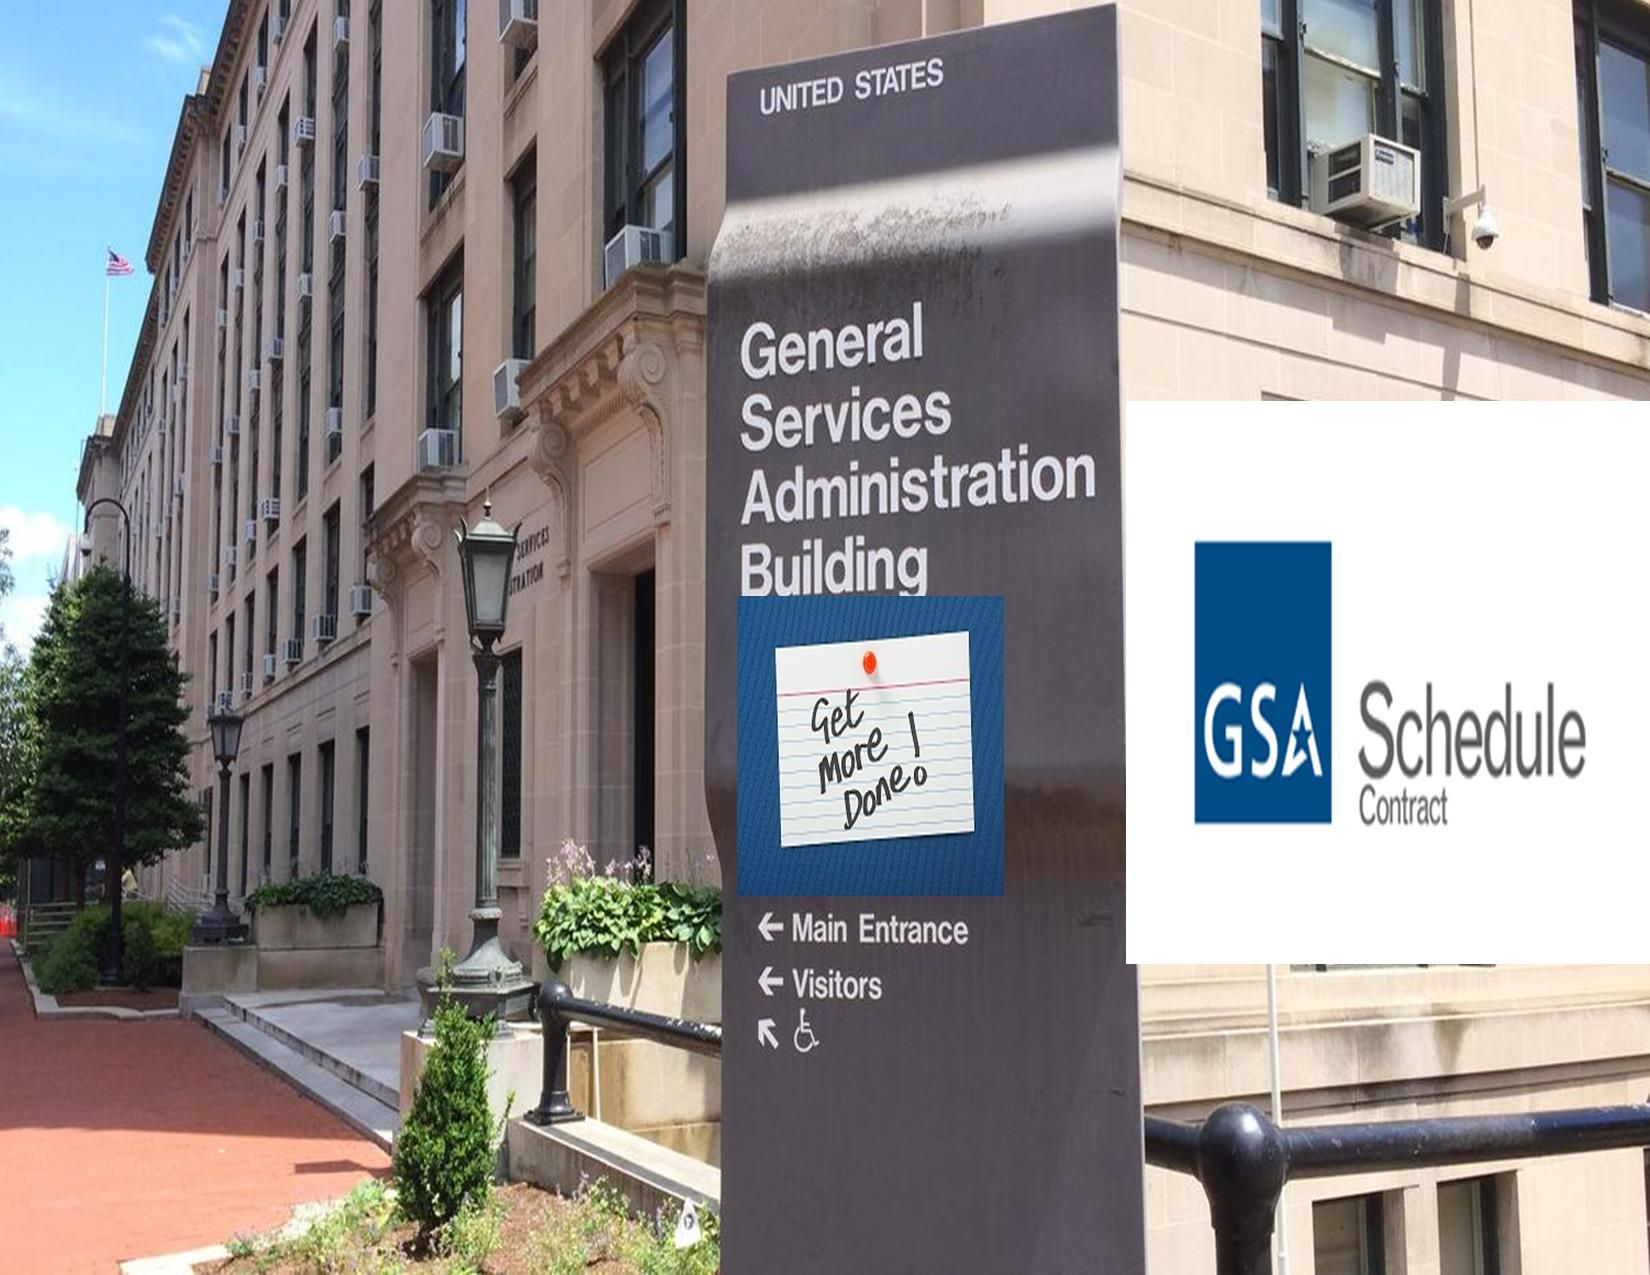 Plans To Reconstruct Gsa Schedules As Part Of Government